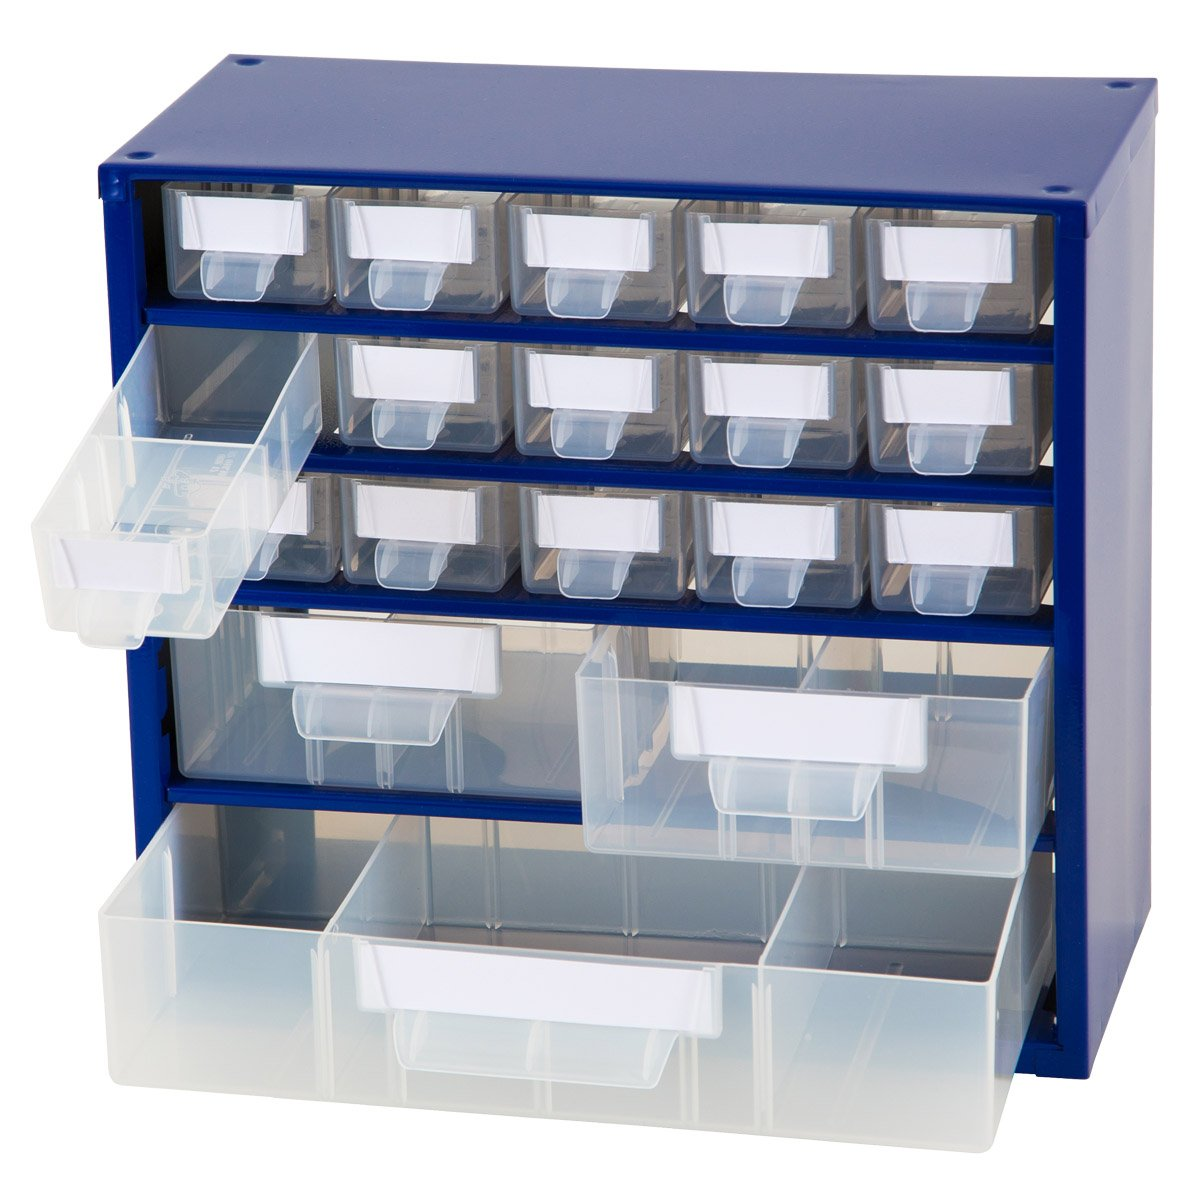 Johnssteel Model 517, 15 Drawer Plastic Parts Type A, 2 Type B, 1 Type C, Steel Metal Storage Hardware Craft Cabinet Tool Organizer, 12.1-Inch W by 11.1-Inch H by 6.1-Inch D,Blue,Dividers,Labels incl.